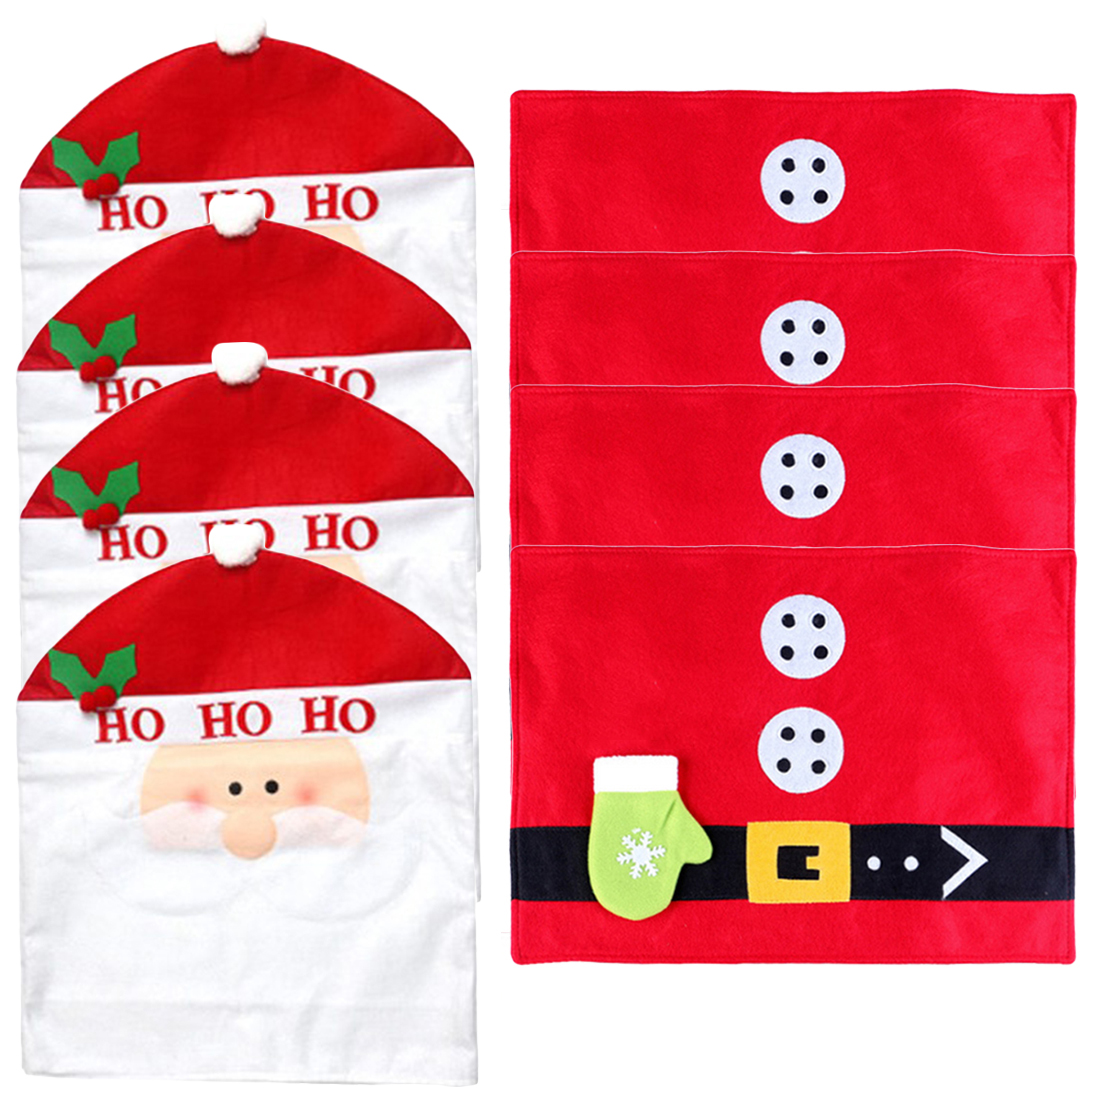 4Pcs/set Santa Claus Christmas Kitchen Chair Slip Covers + 4Pcs Christmas Tableware Mat Party Festival Supplies